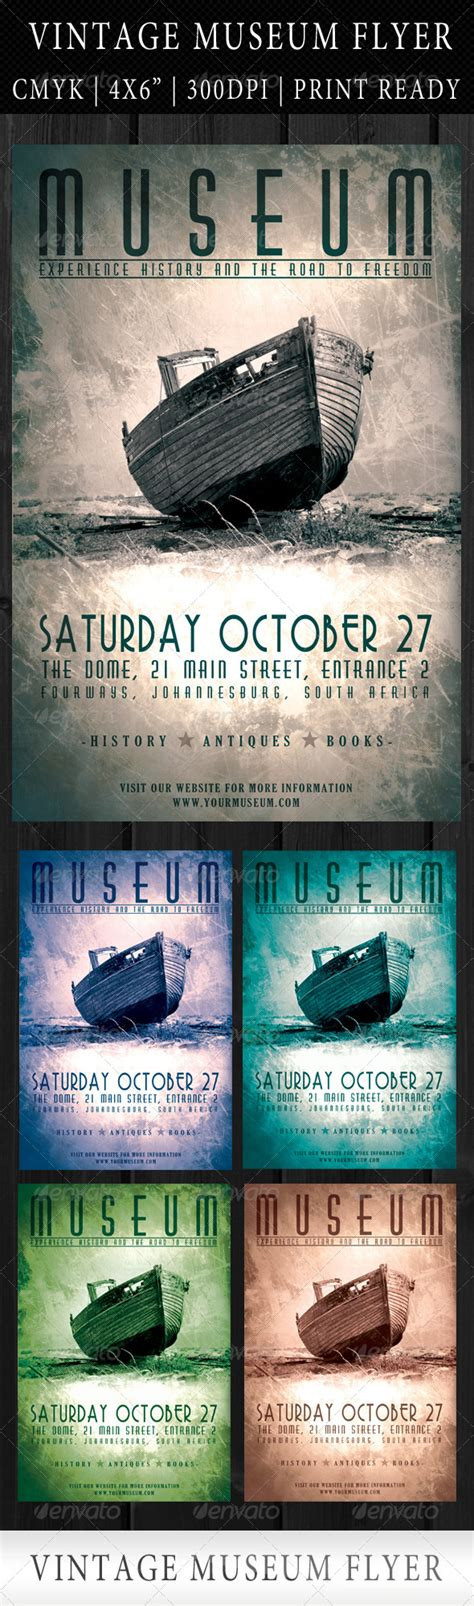 Museum Flyer Template vintage museum flyer template by yellow emperor graphicriver